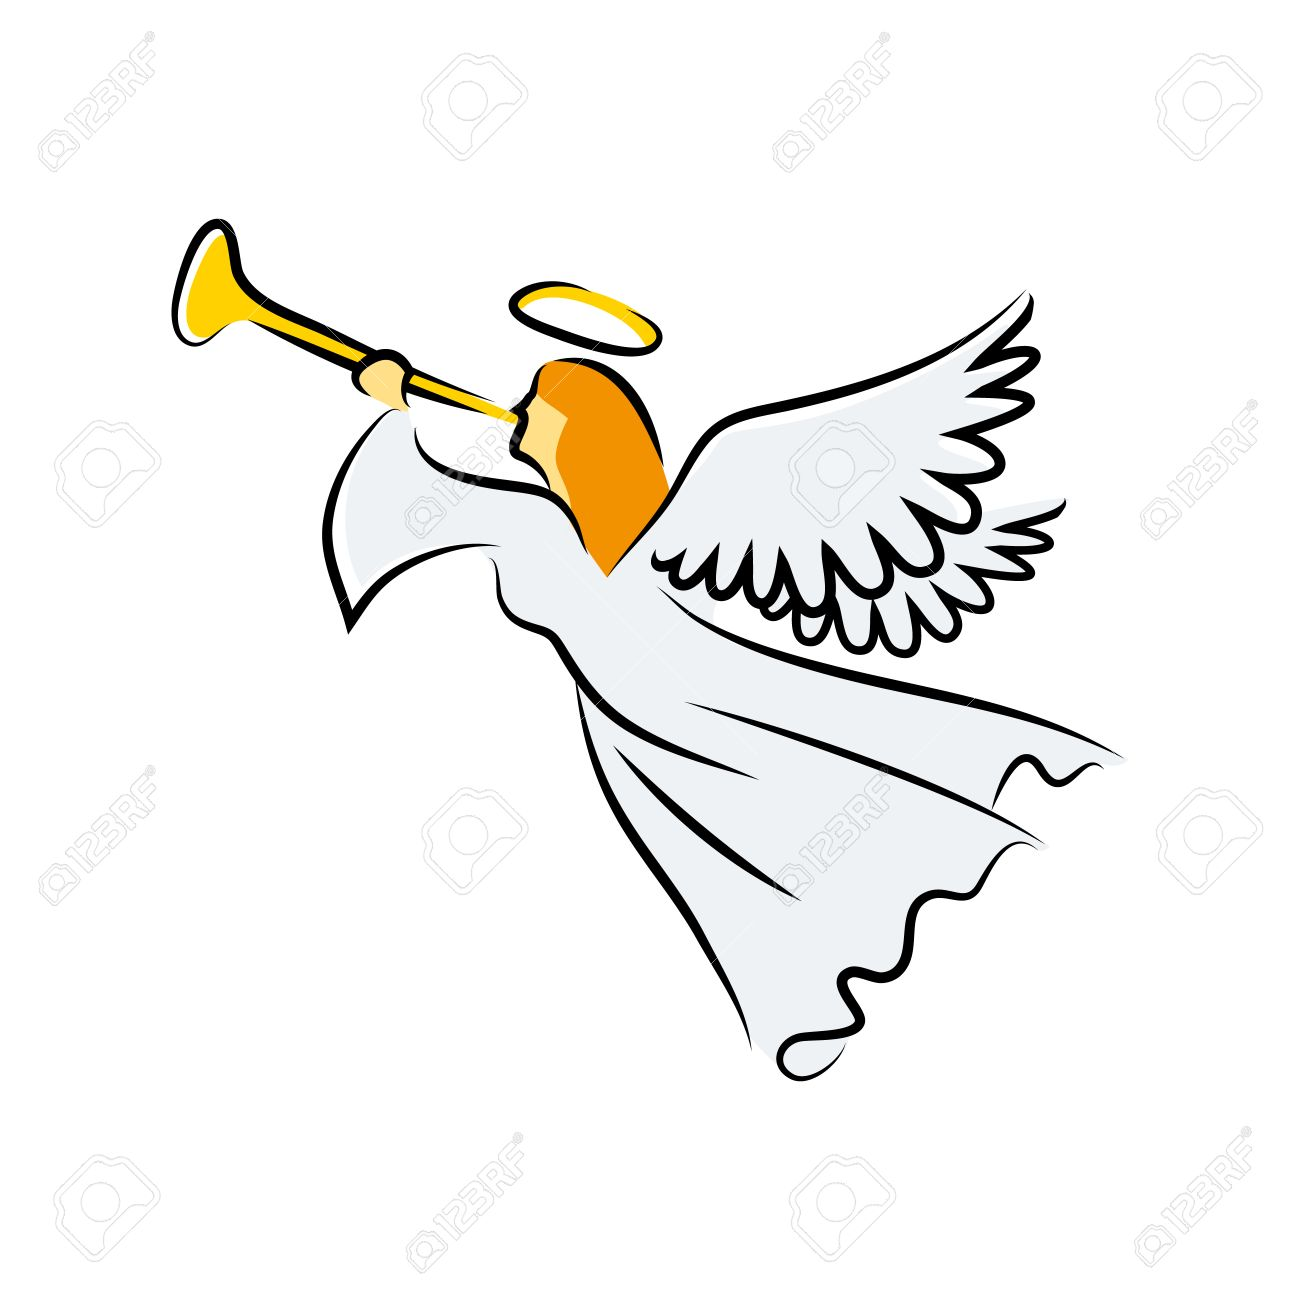 949 Trumpet free clipart.